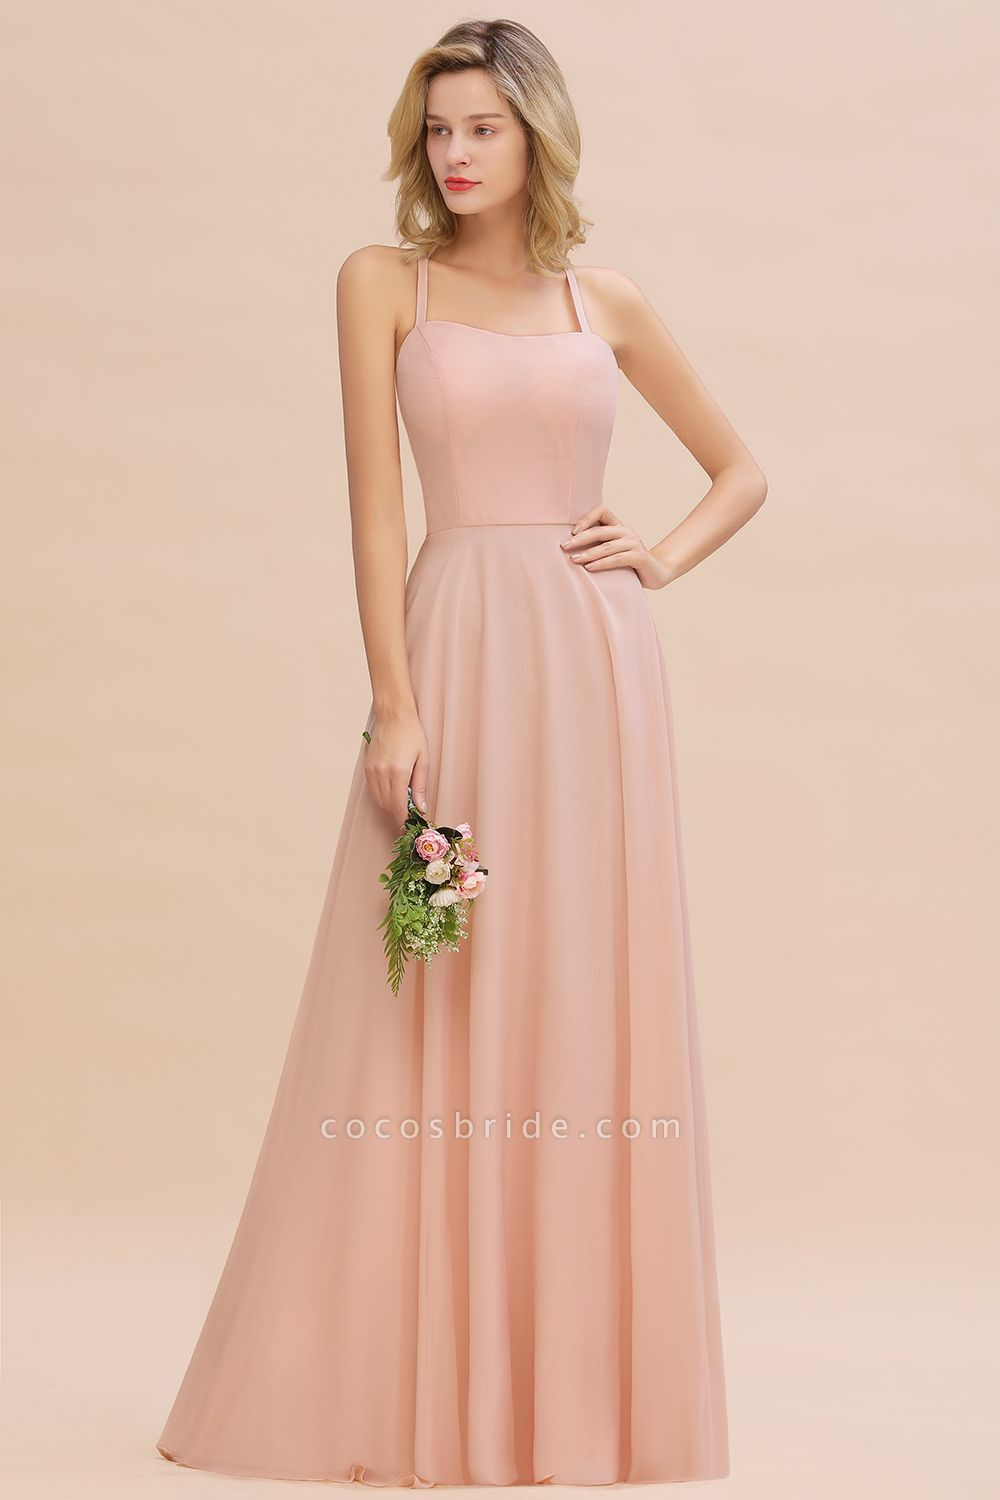 BM0782 Modern Chiffon Straps Sleeveless Open Back Long Bridesmaid Dress